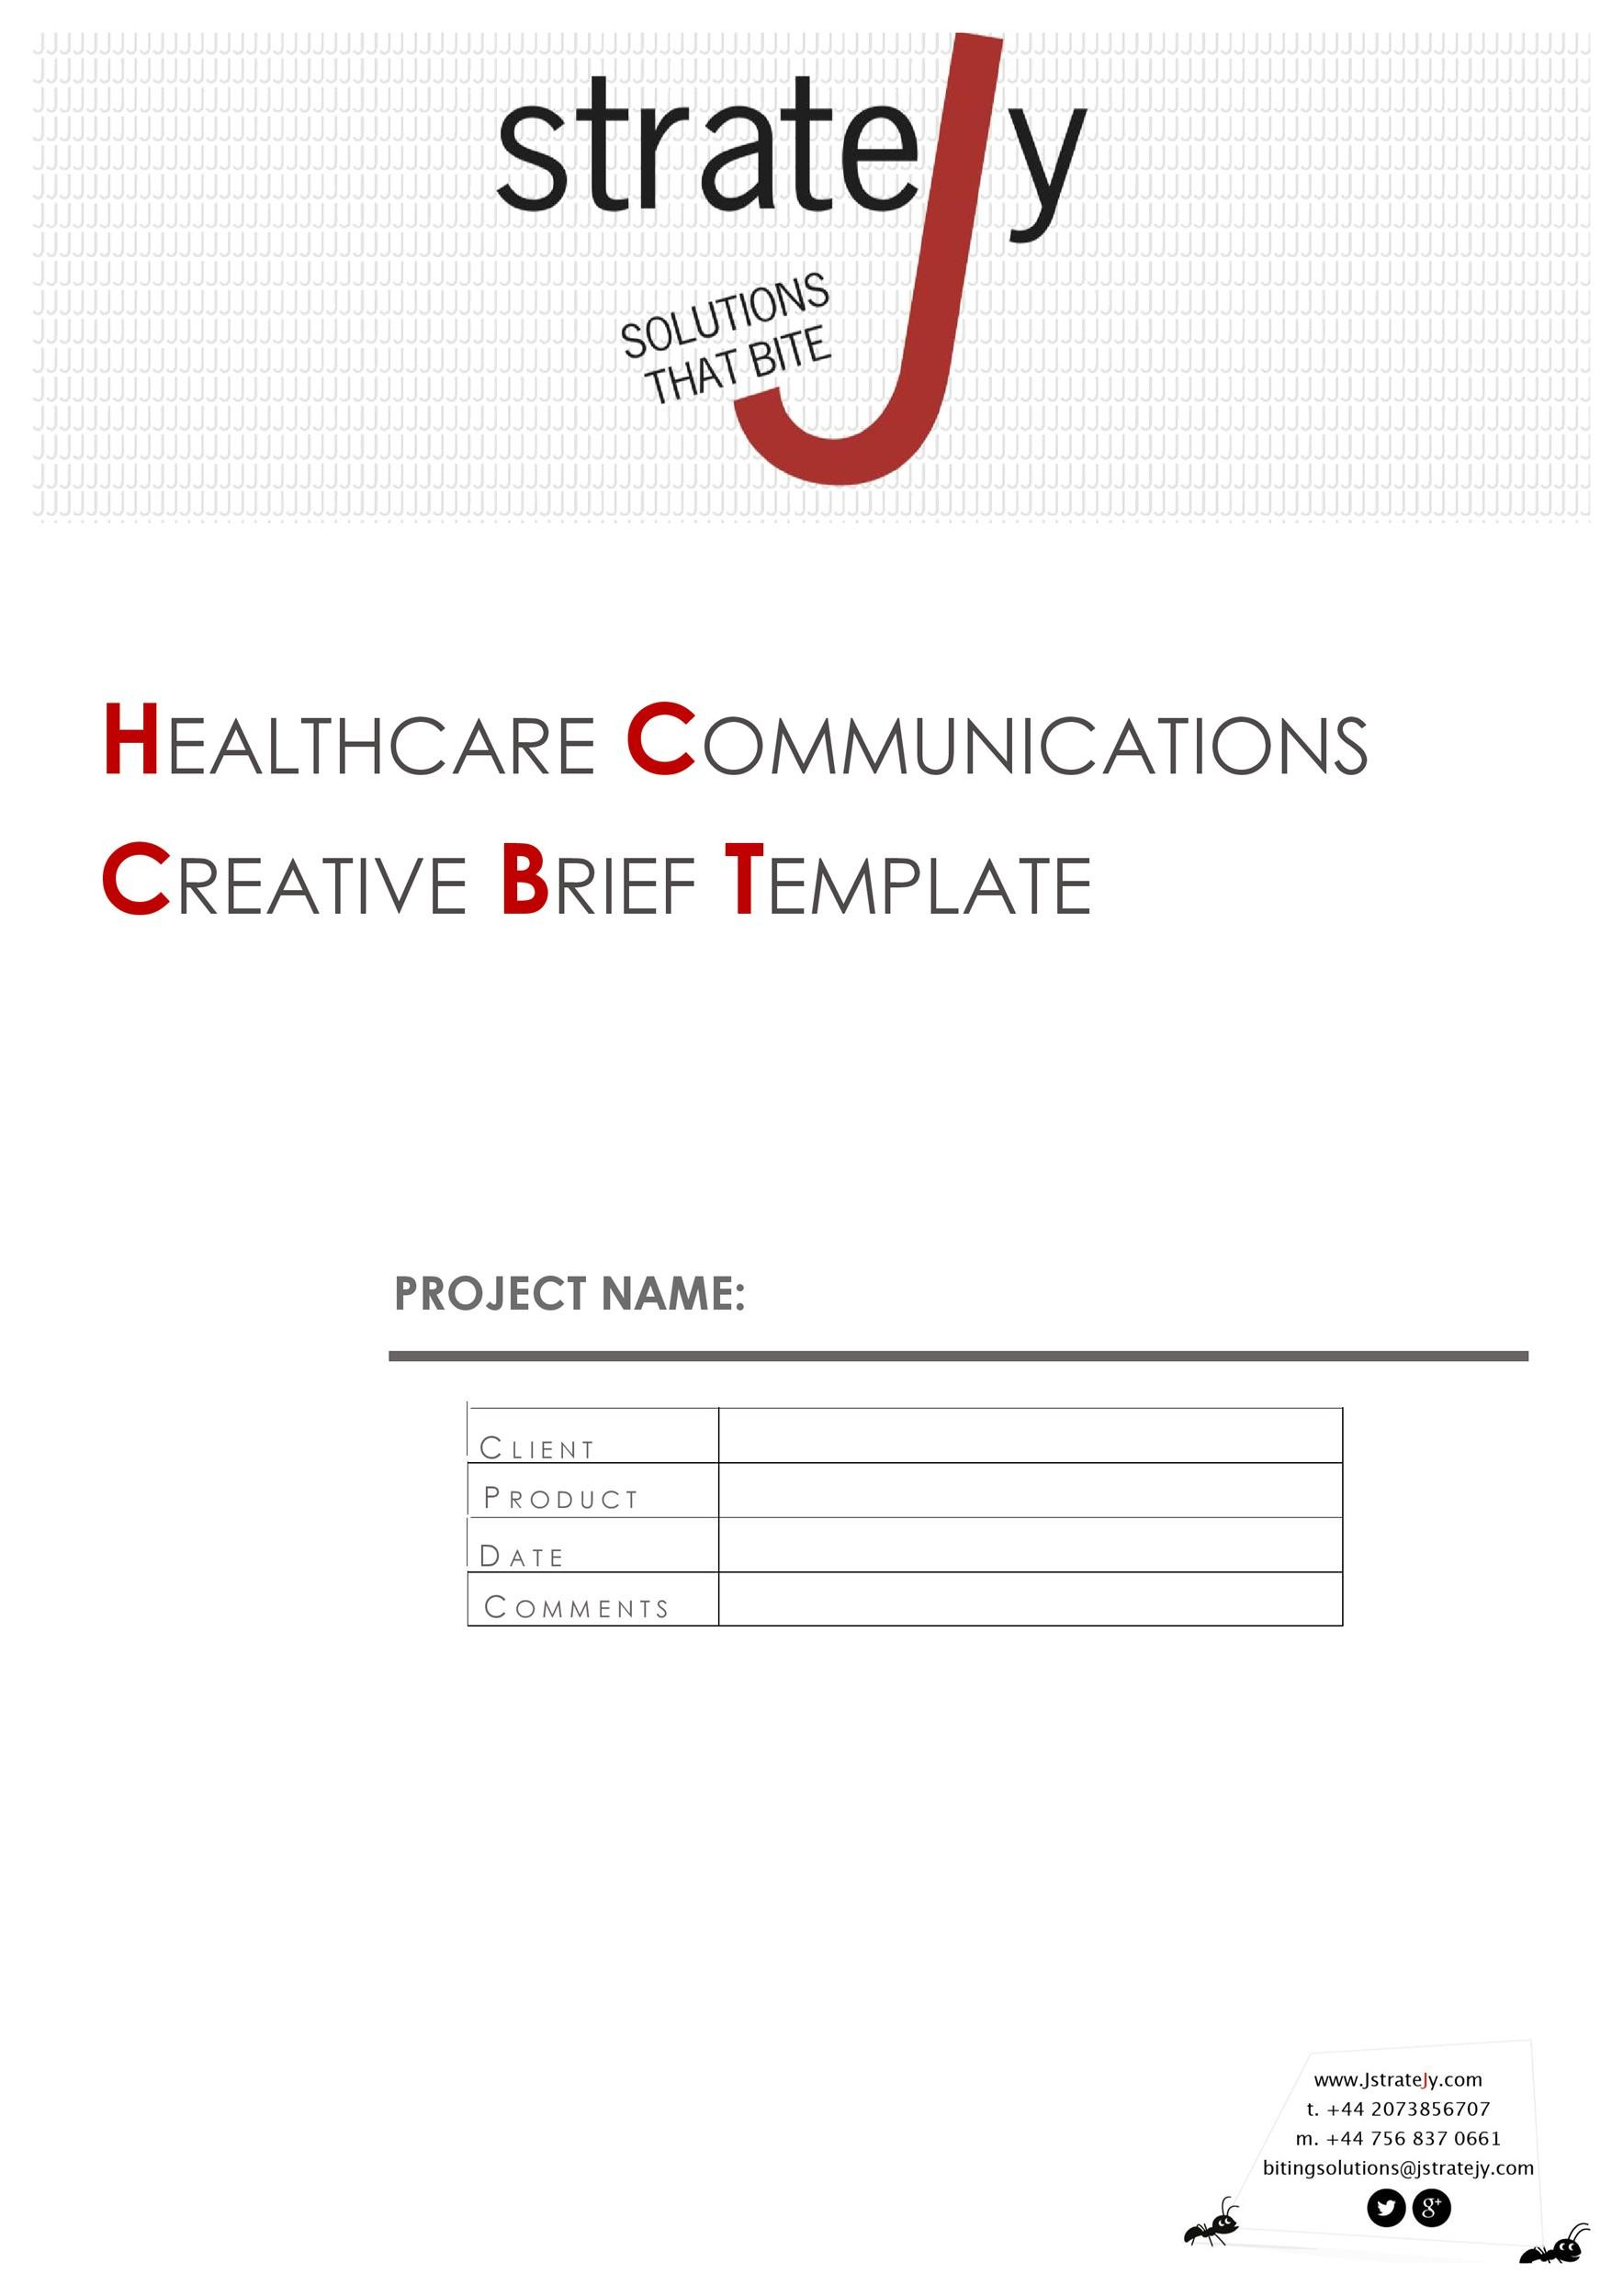 Printable Creative Brief Template 24